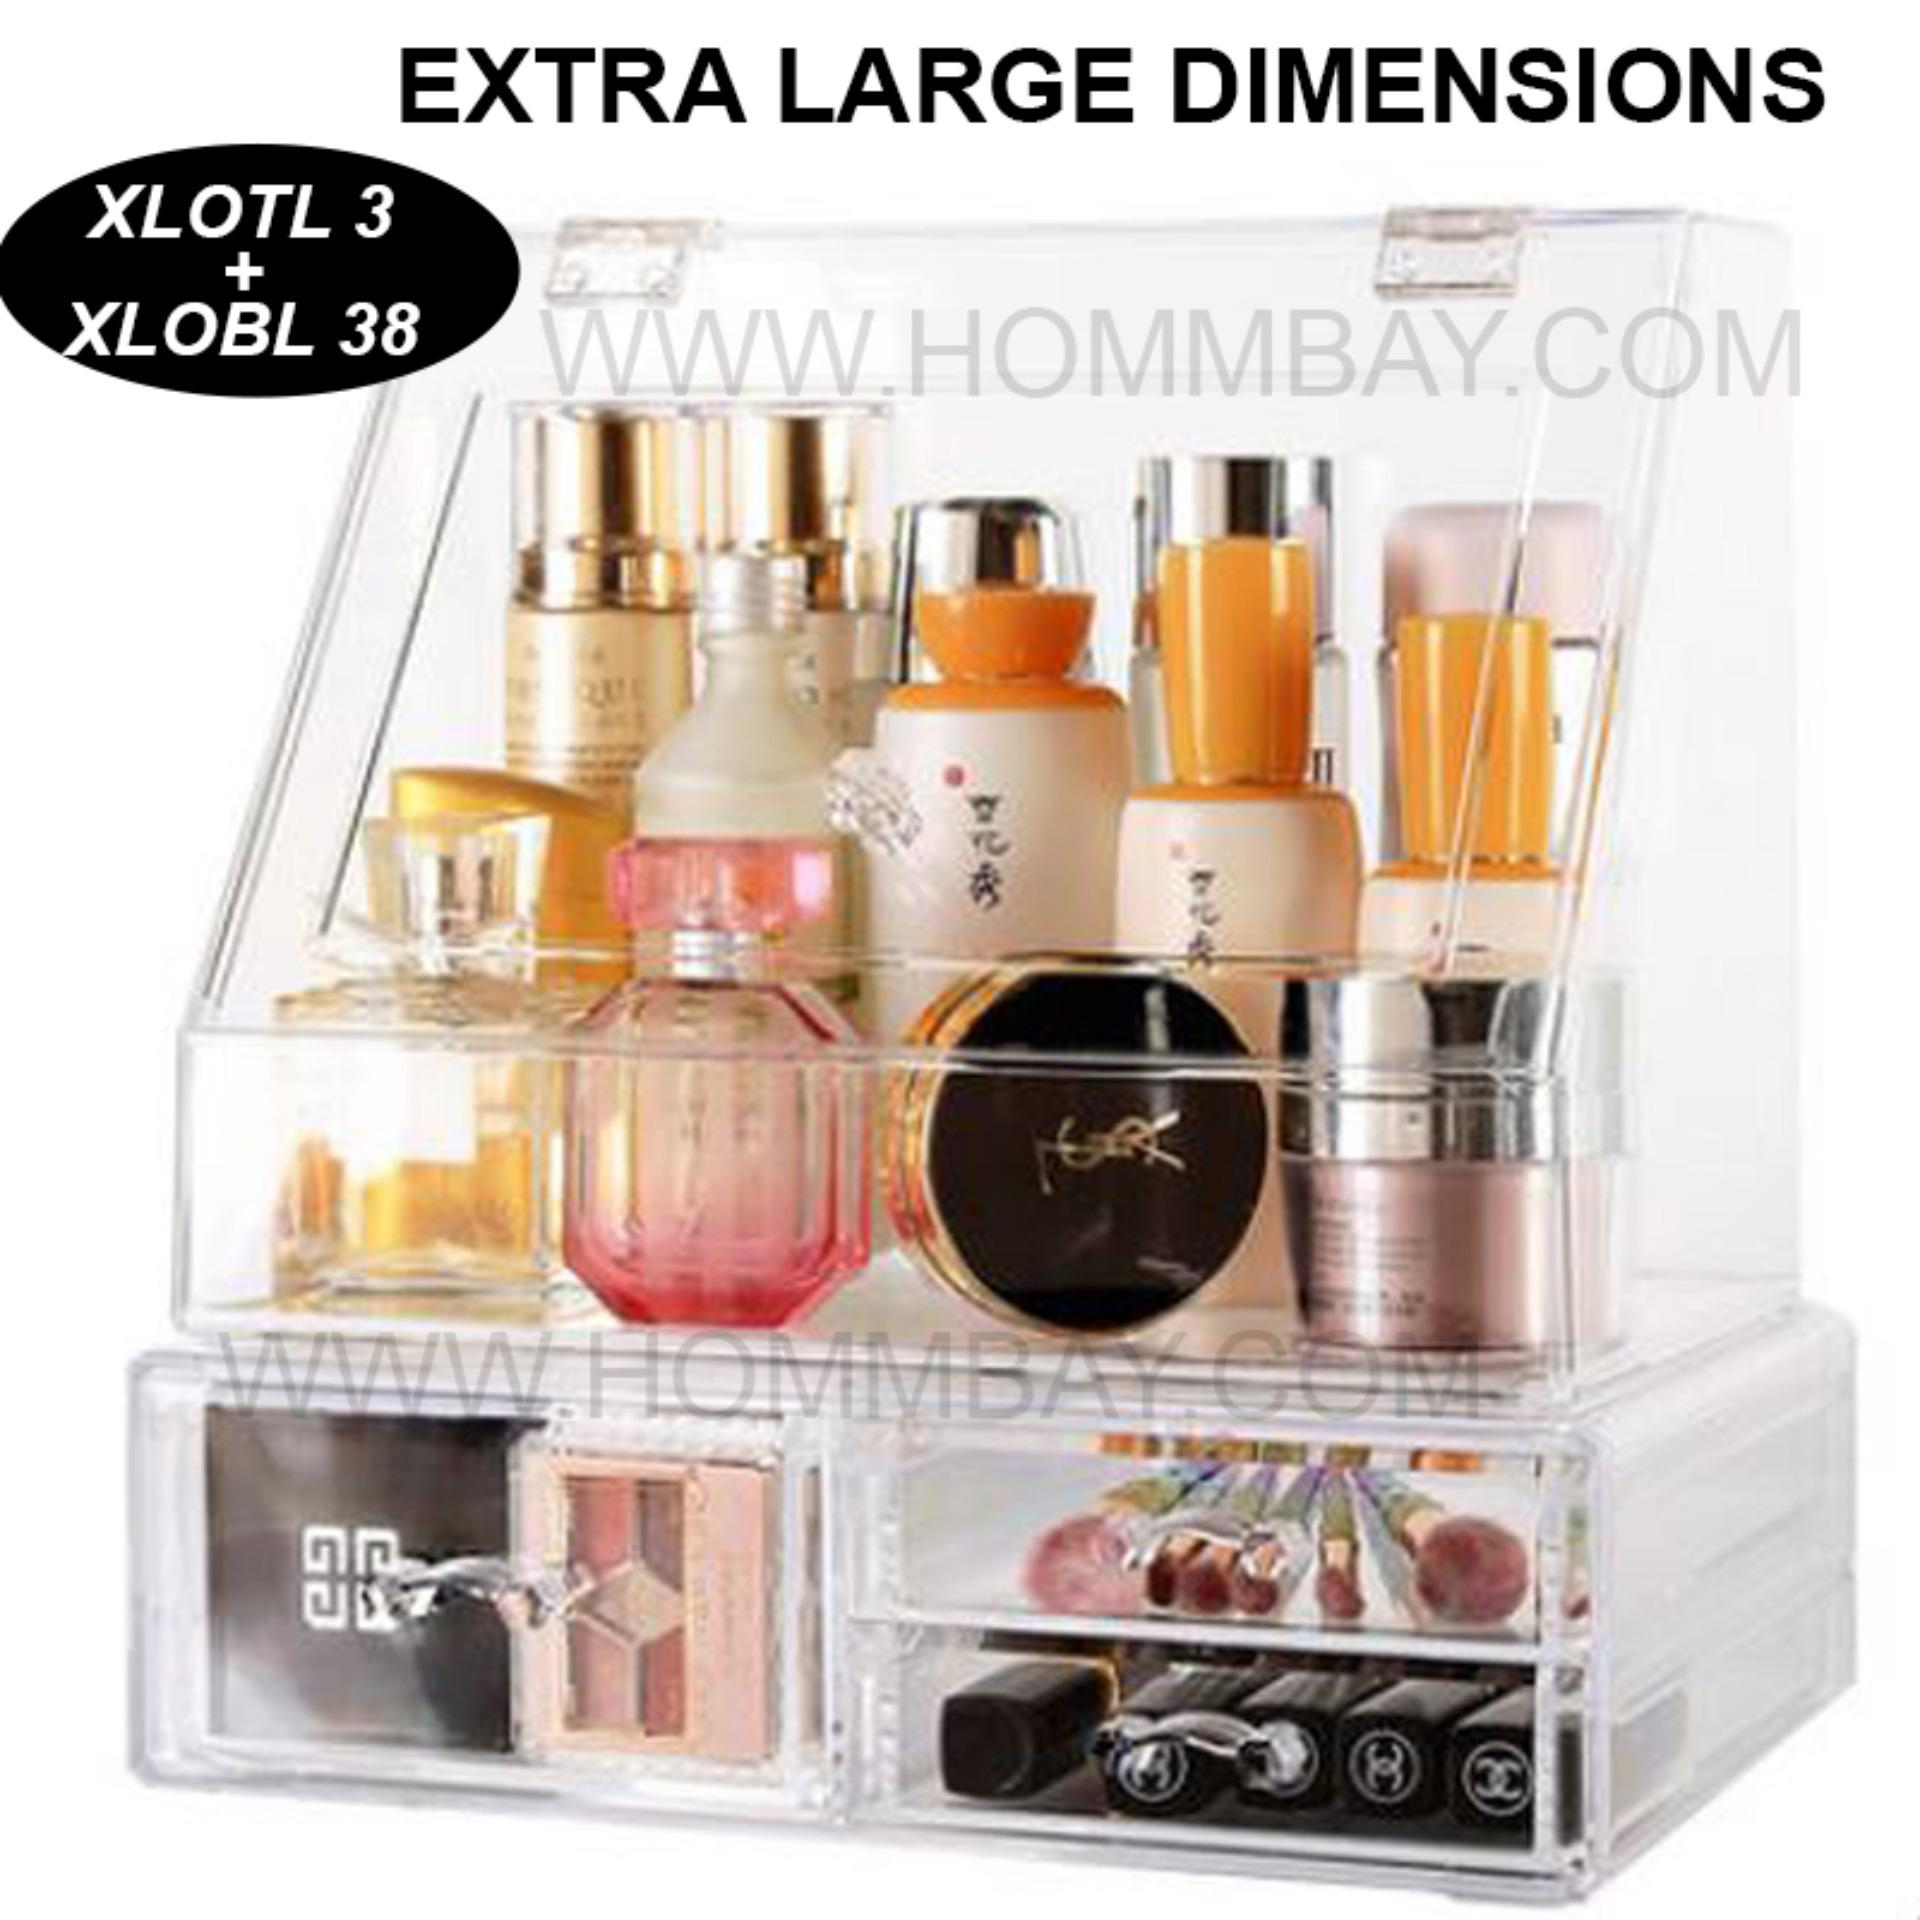 Clear Acrylic Transparent Make Up Makeup Cosmetic Lipstick Jewellery Jewelry Organiser Organizer Drawer Storage Box Holder I Extra Large I Stackable I XLOTL 7 I XLOBL 38